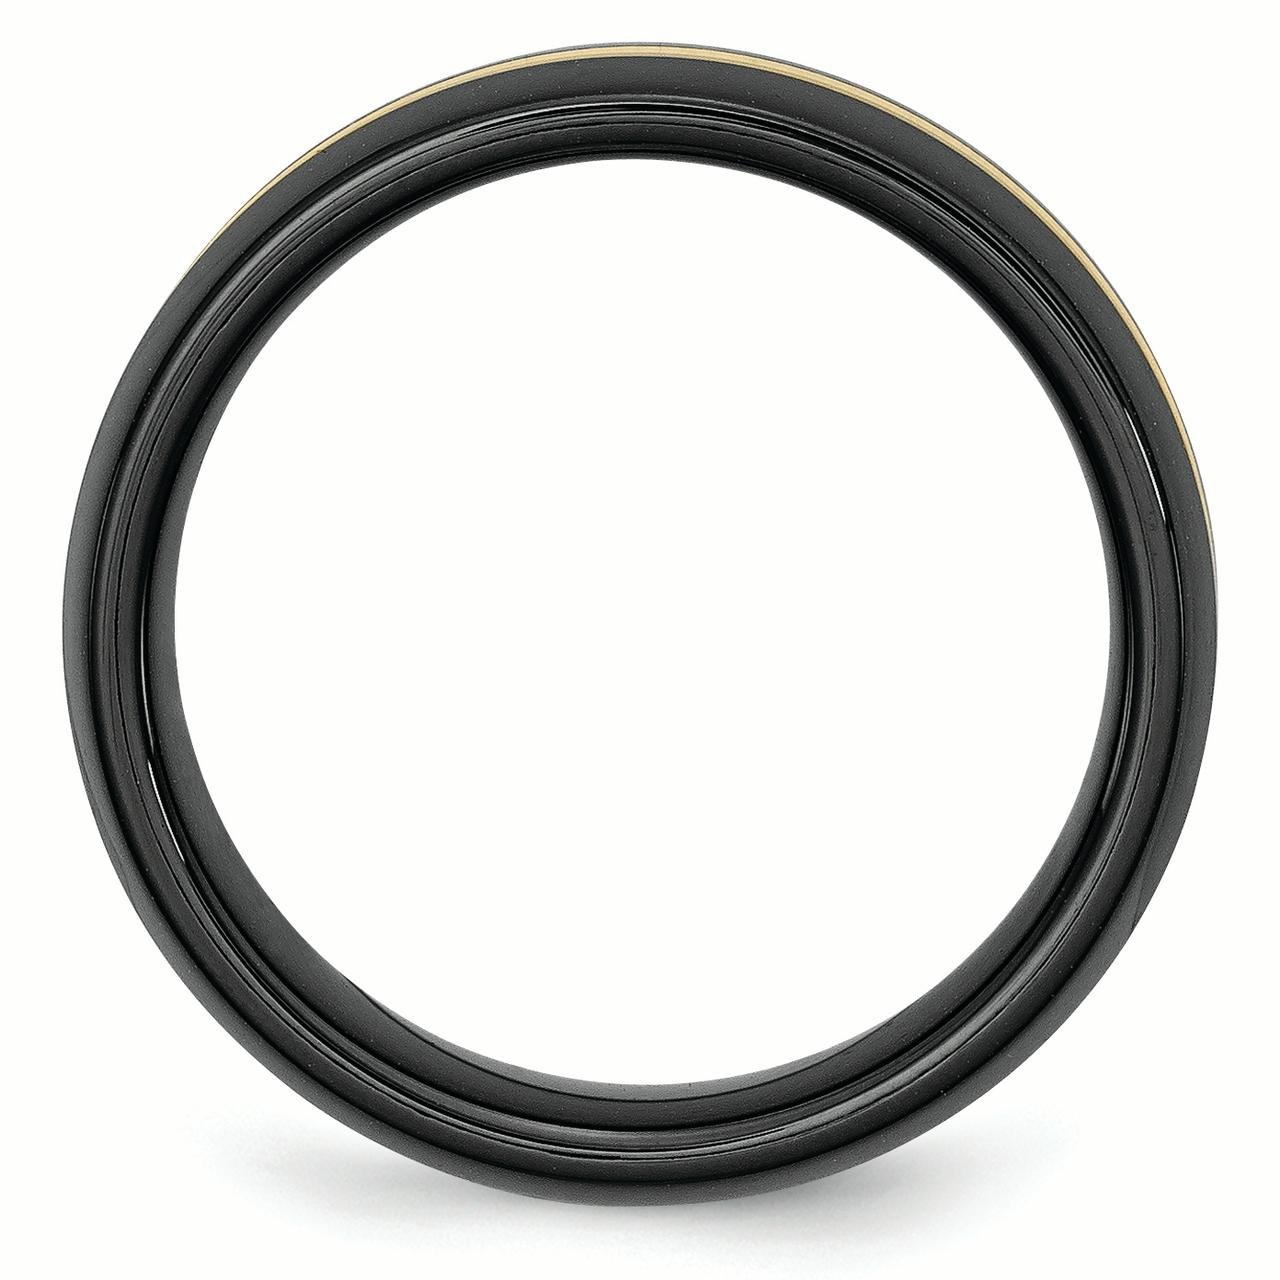 Ceramic Black with 14k Inlay 8mm Polished Band Ring 8.5 Size - image 3 de 6